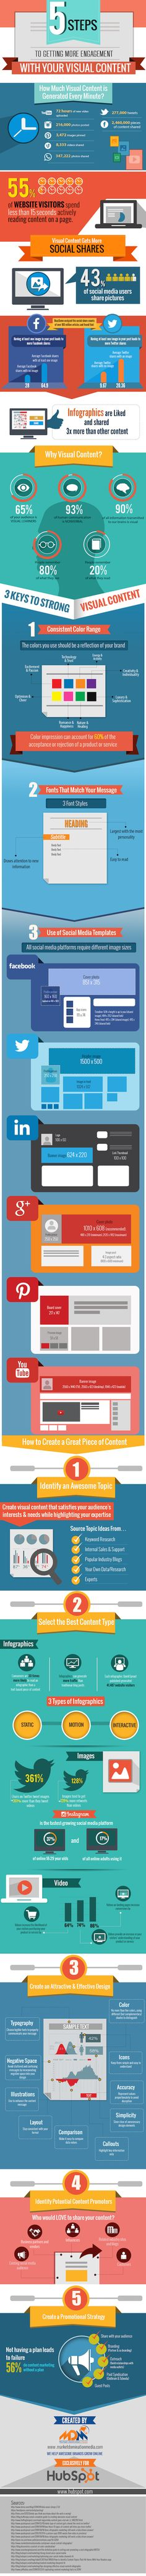 5 Steps to Getting More Engagement With Your Visual Content [Infographic], via @HubSpot & @mdmseo